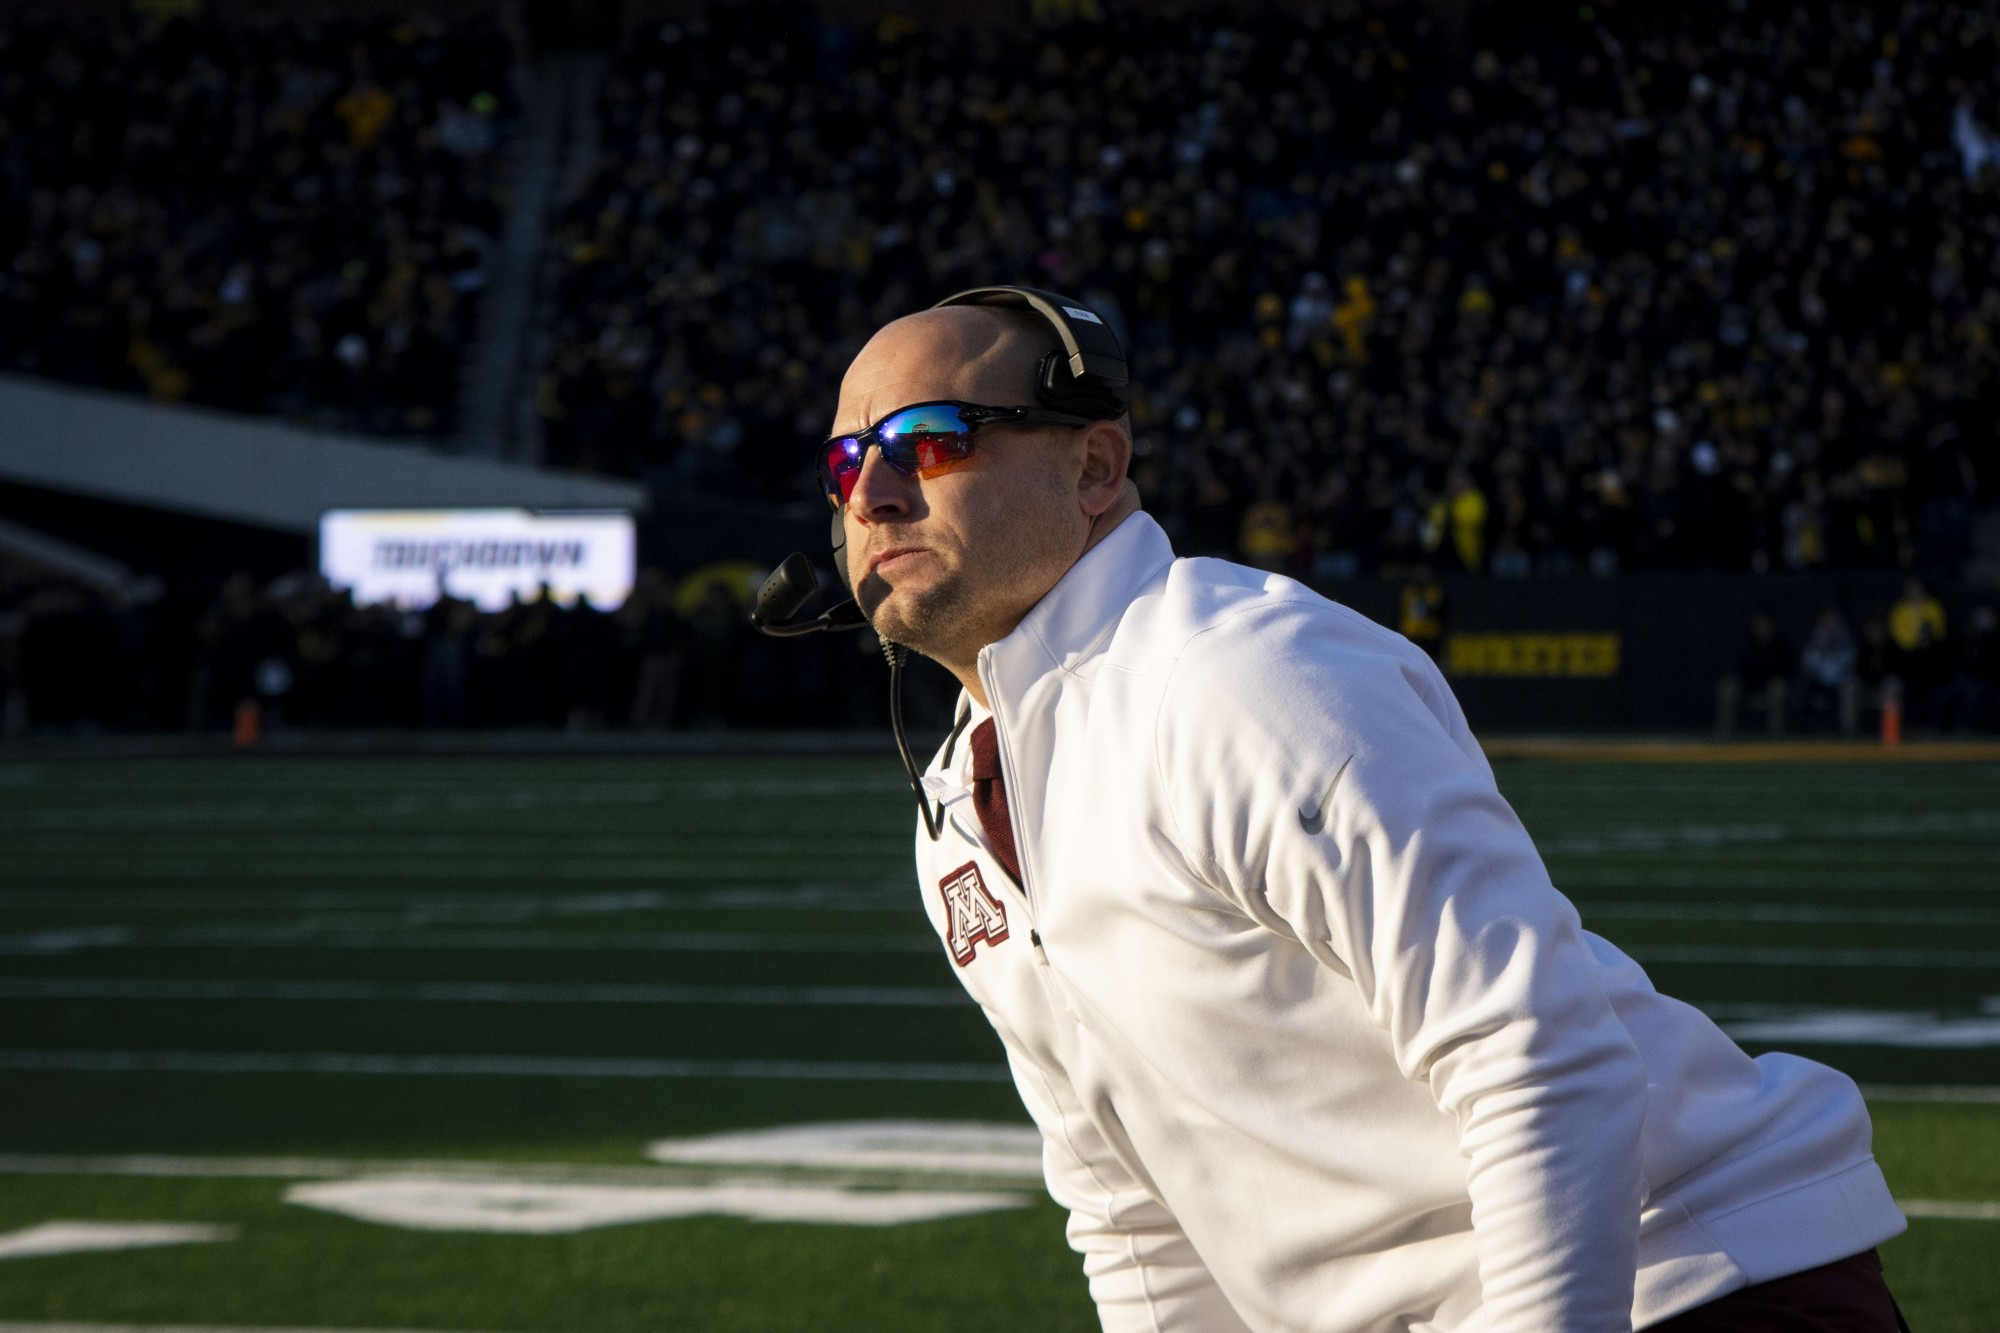 Head Coach P.J. Fleck observes the game at Kinnick Stadium on Saturday Nov. 16. Iowa defeated the Gophers 23-19 ending their winning streak and bringing their record to 9-1.